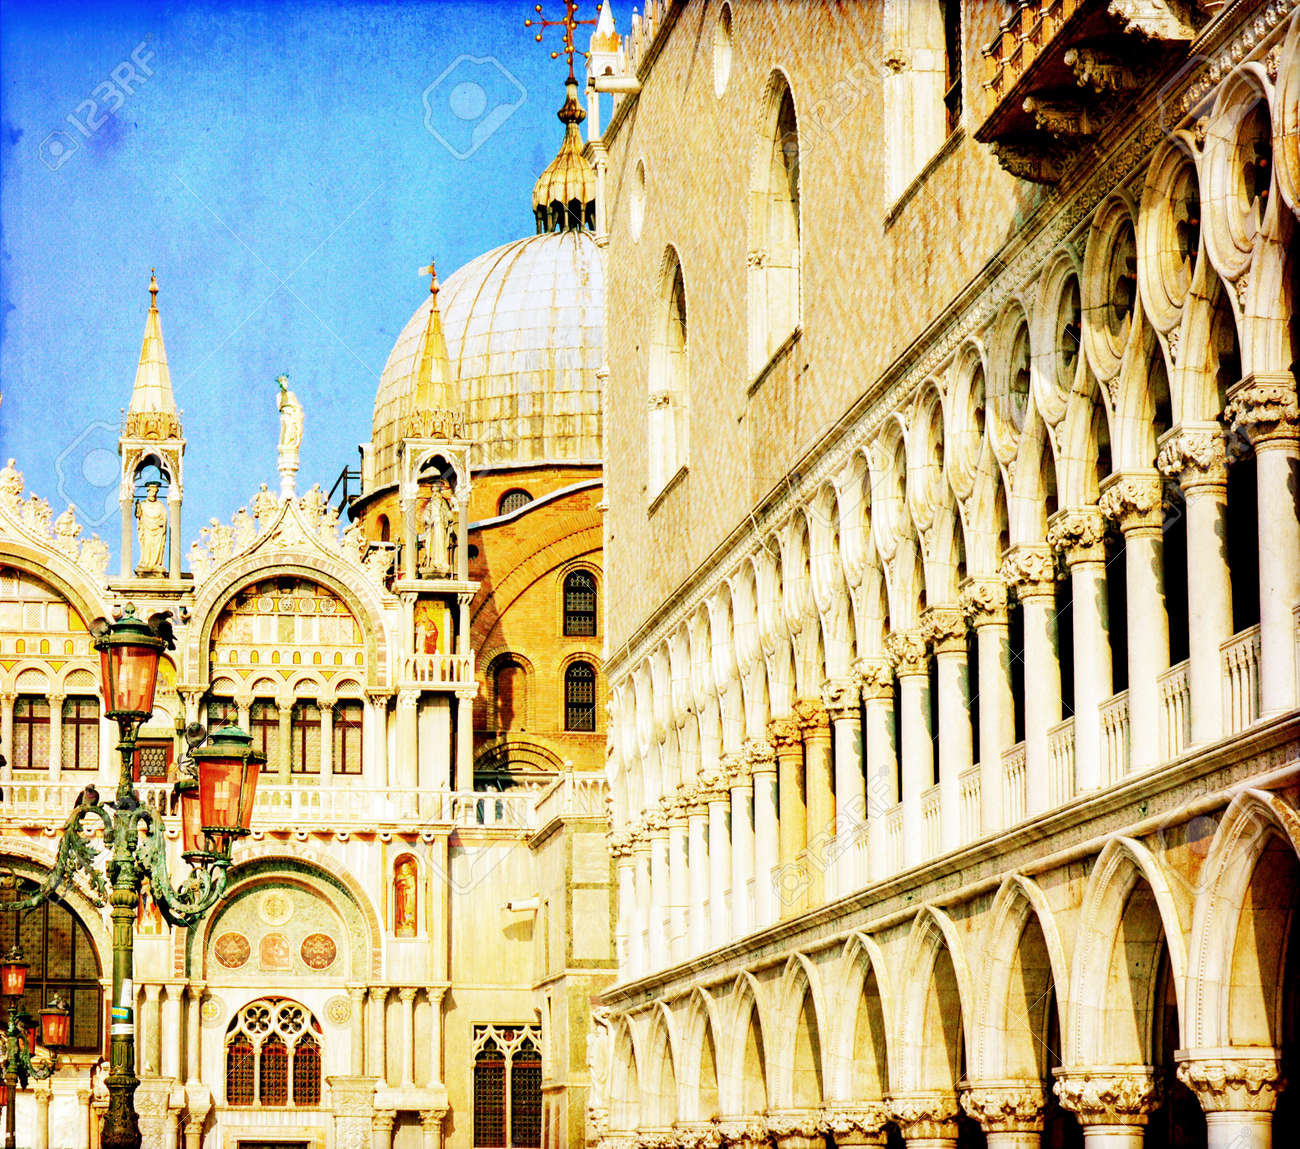 Vintage image of San Marco square - Venice Italy Stock Photo - 16796047